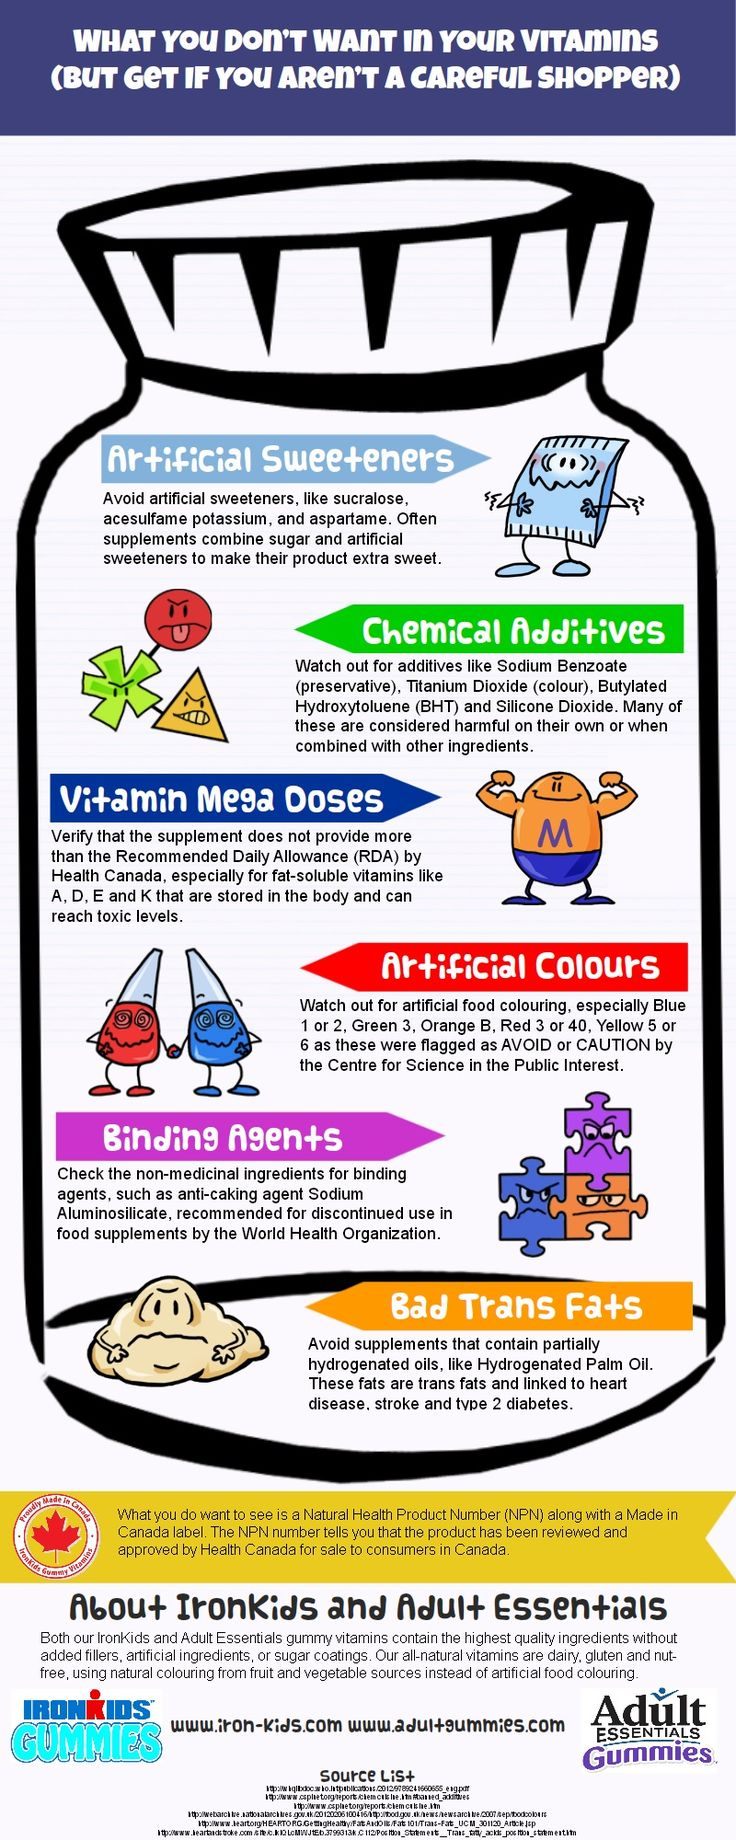 What You Don't Want In Your Vitamins